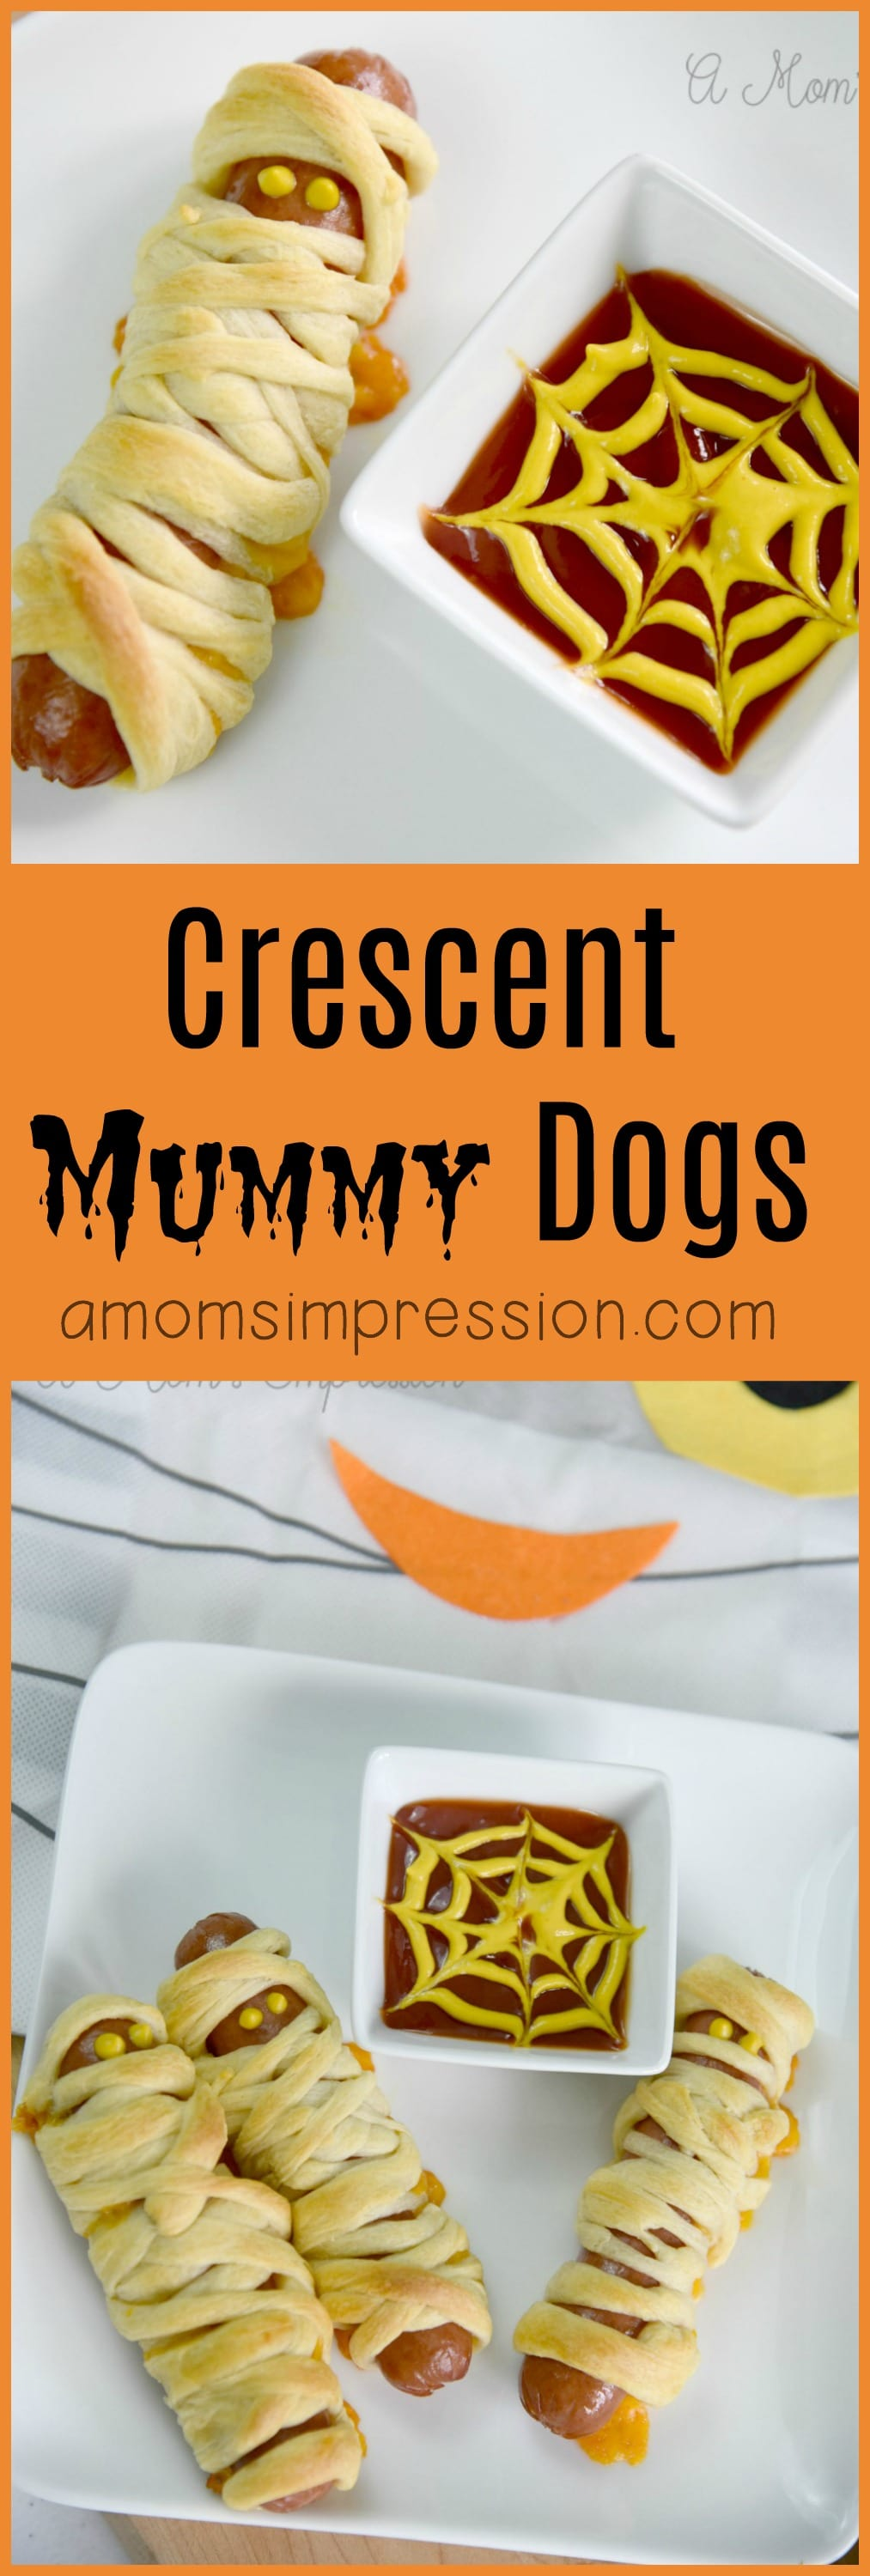 Crescent Mummy Dogs aren't just for the kids! This fun Halloween recipe idea is perfect for dinner or as an appetizer at your next spooky party! Easy to follow video recipe directions.